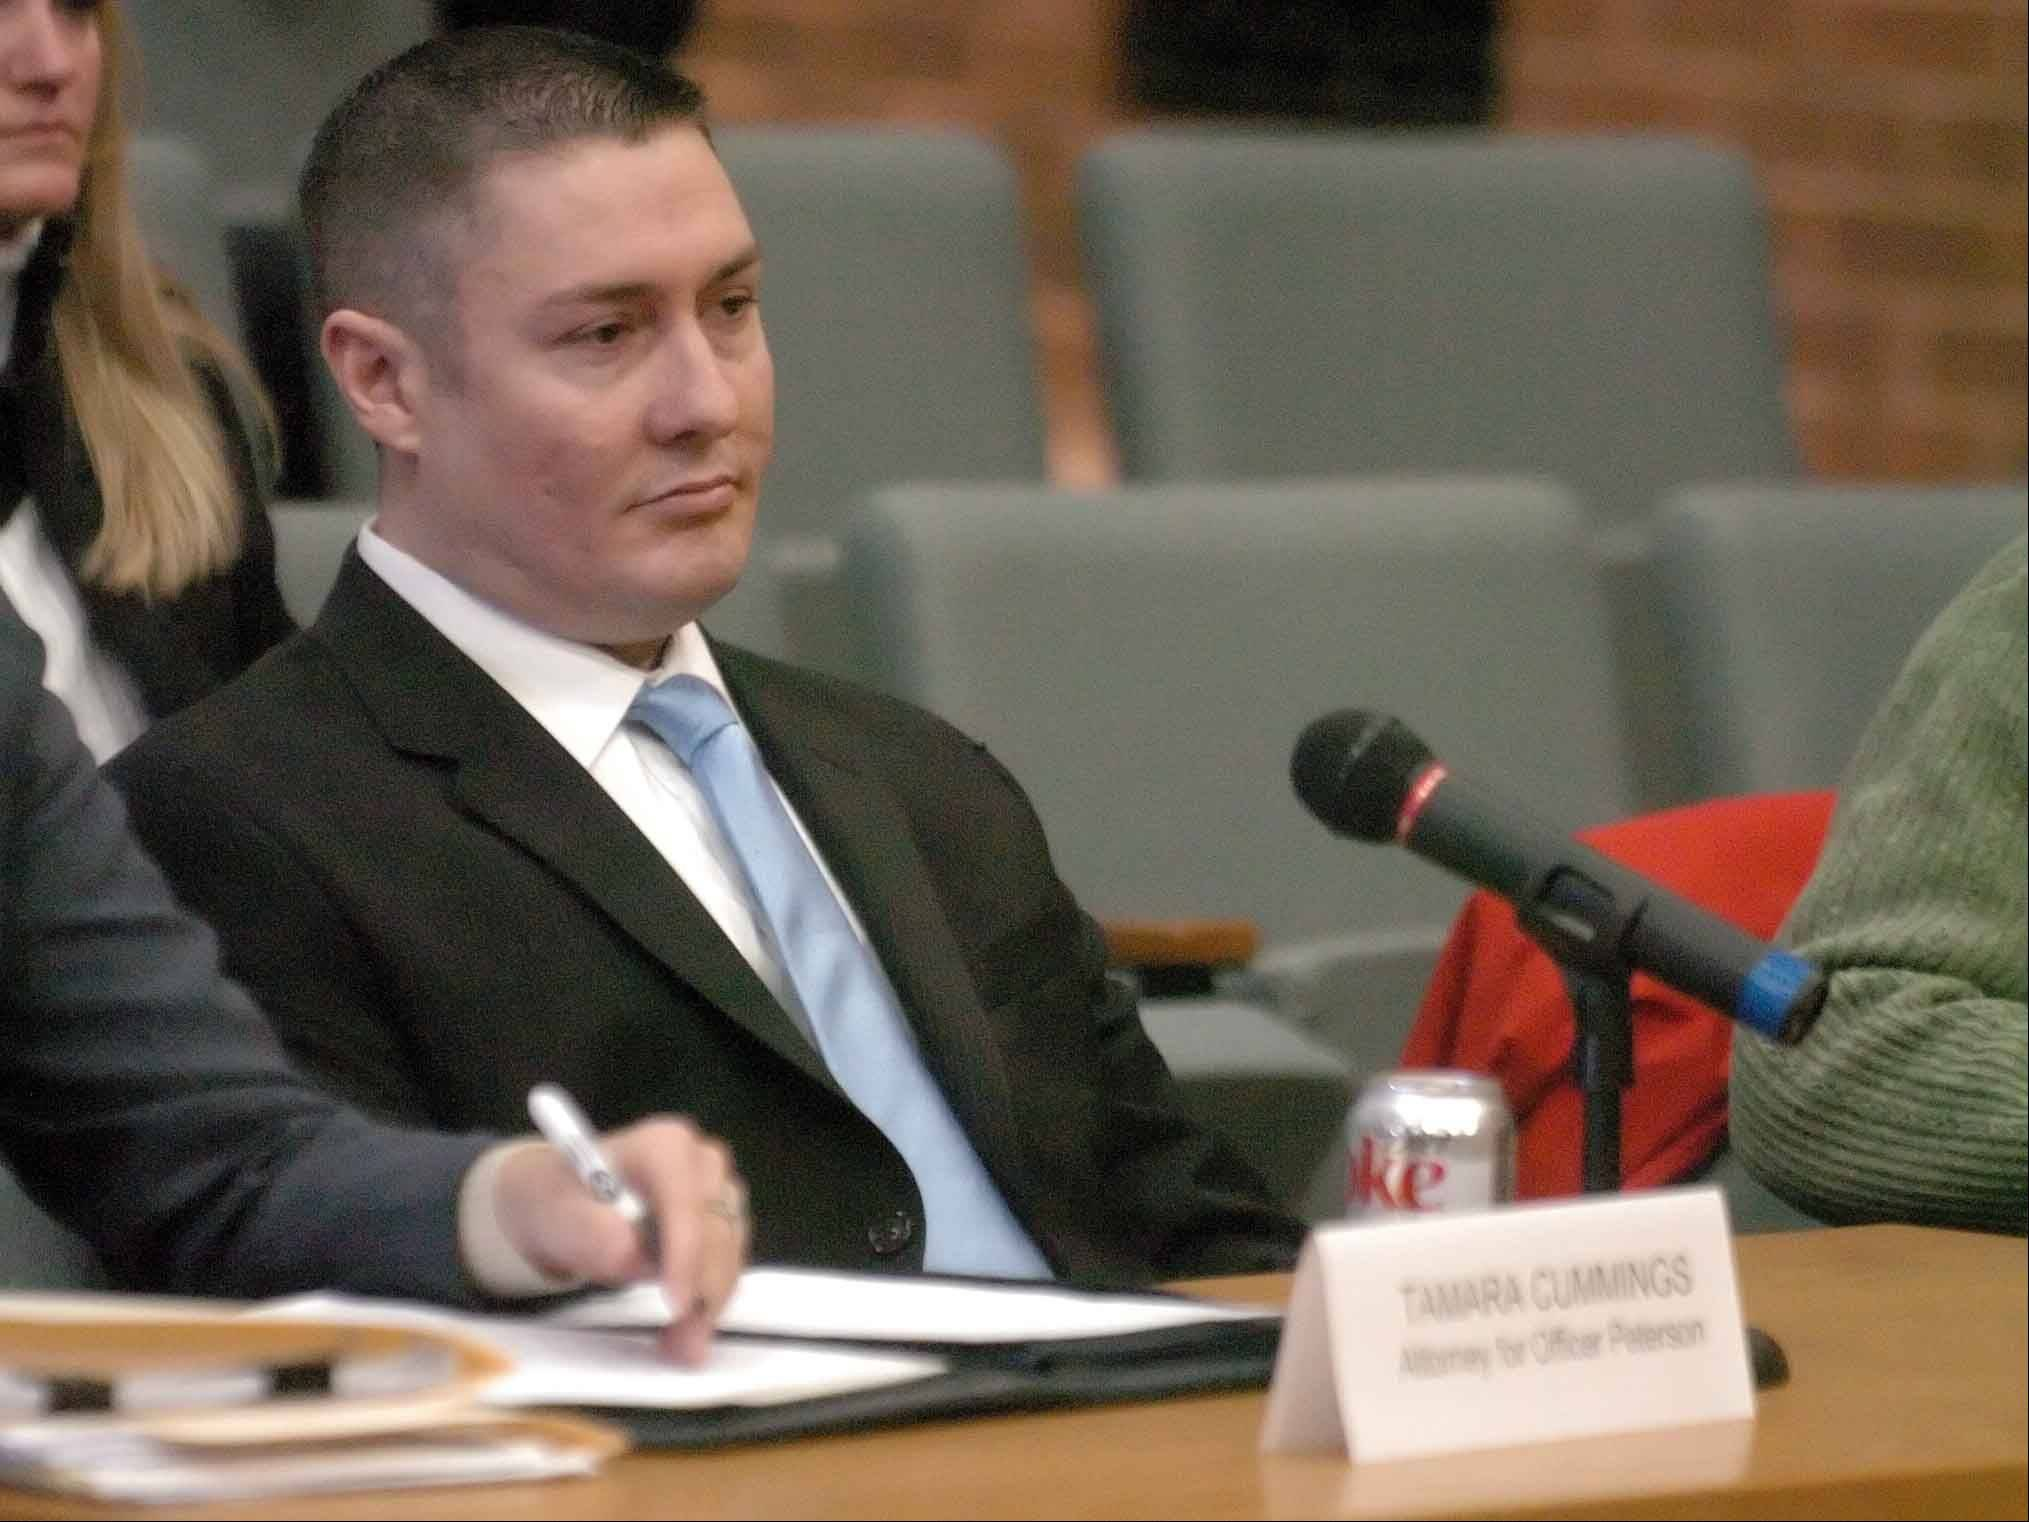 PAUL MICHNA/Daily Herald file photo Former Oak Brook Police Officer Stephen Peterson attends an administrative hearing, which ultimately resulted in him losing his job in February 2011. Peterson sued the village and its former police chief Tuesday, claiming there was a conspiracy to ouster him.